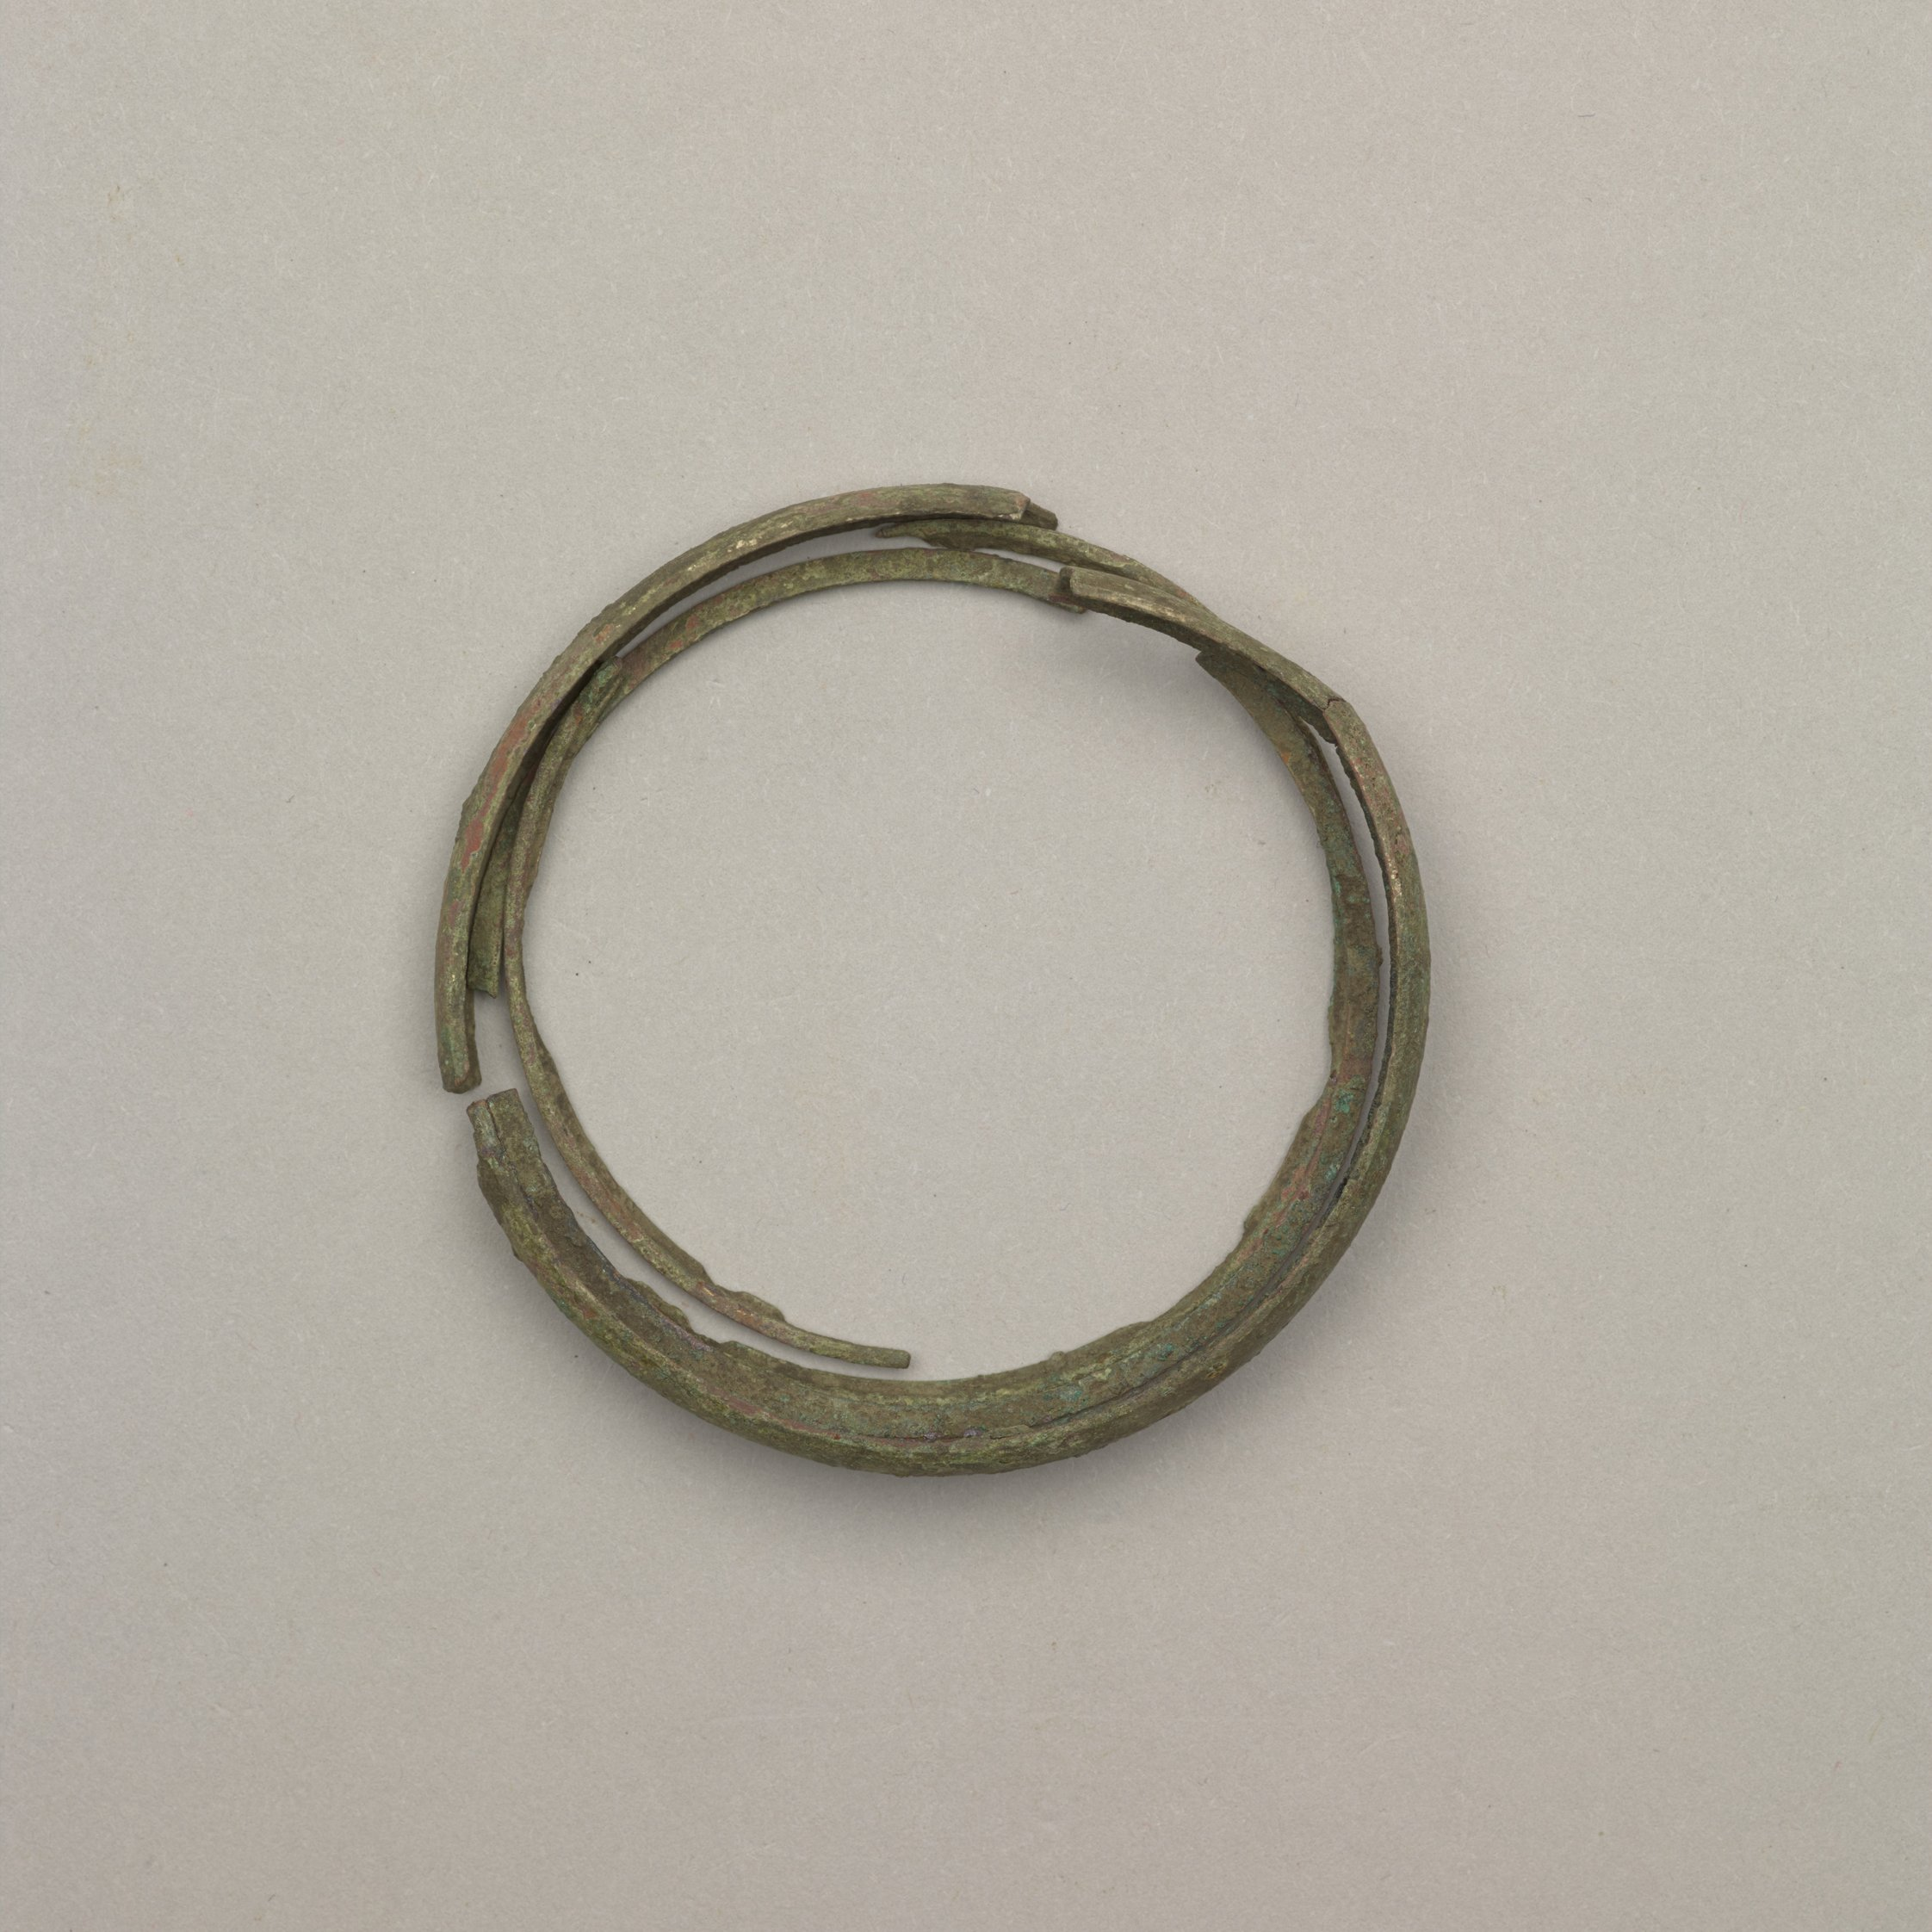 Brass Bracelet from the Mahaffie Farmstead and Stagecoach Stop, 14JO356 - 1